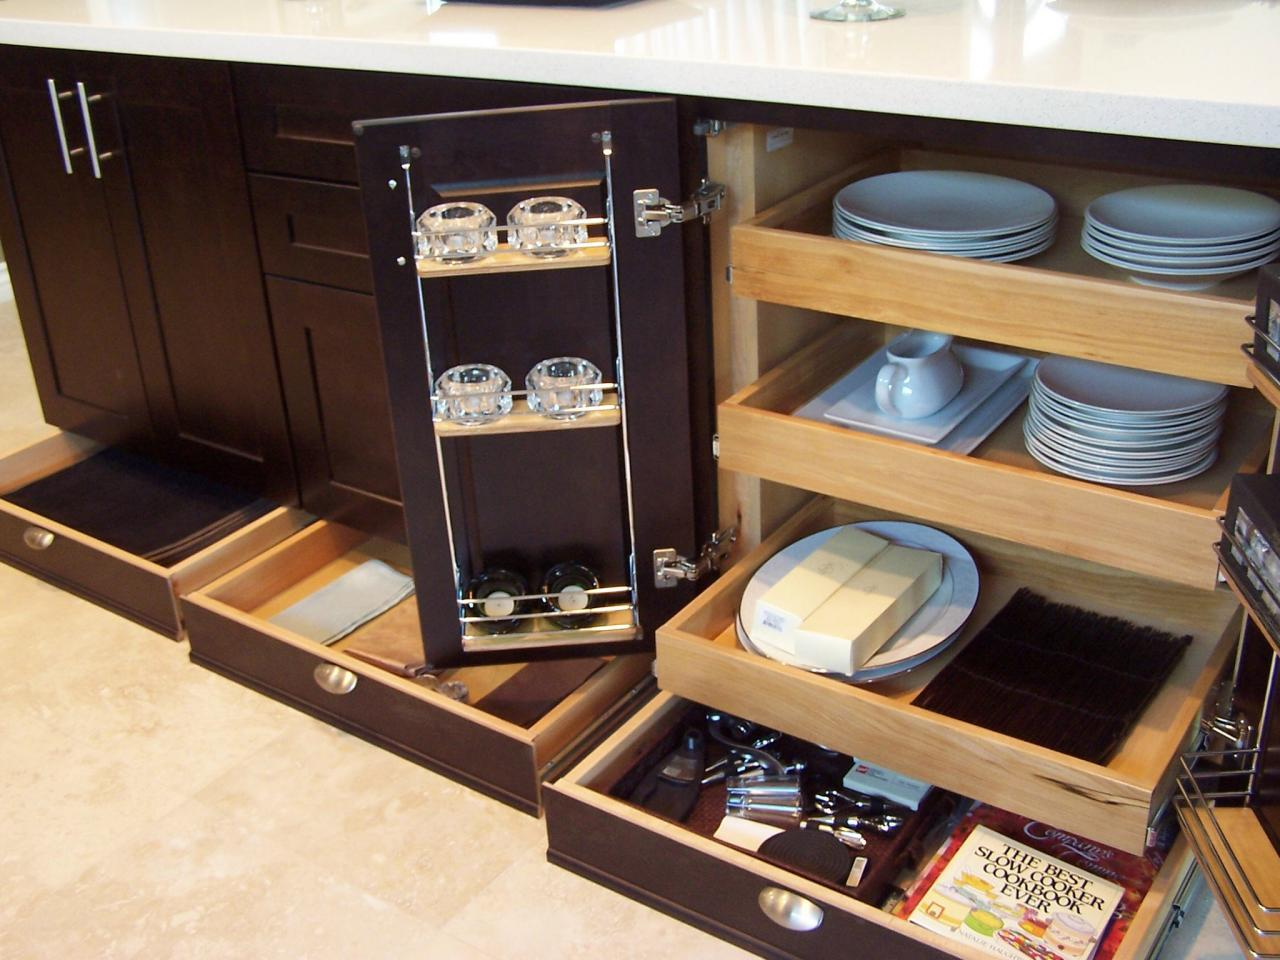 Kitchen Cabinets Storage kitchen pull-out cabinets: pictures, options, tips & ideas | hgtv